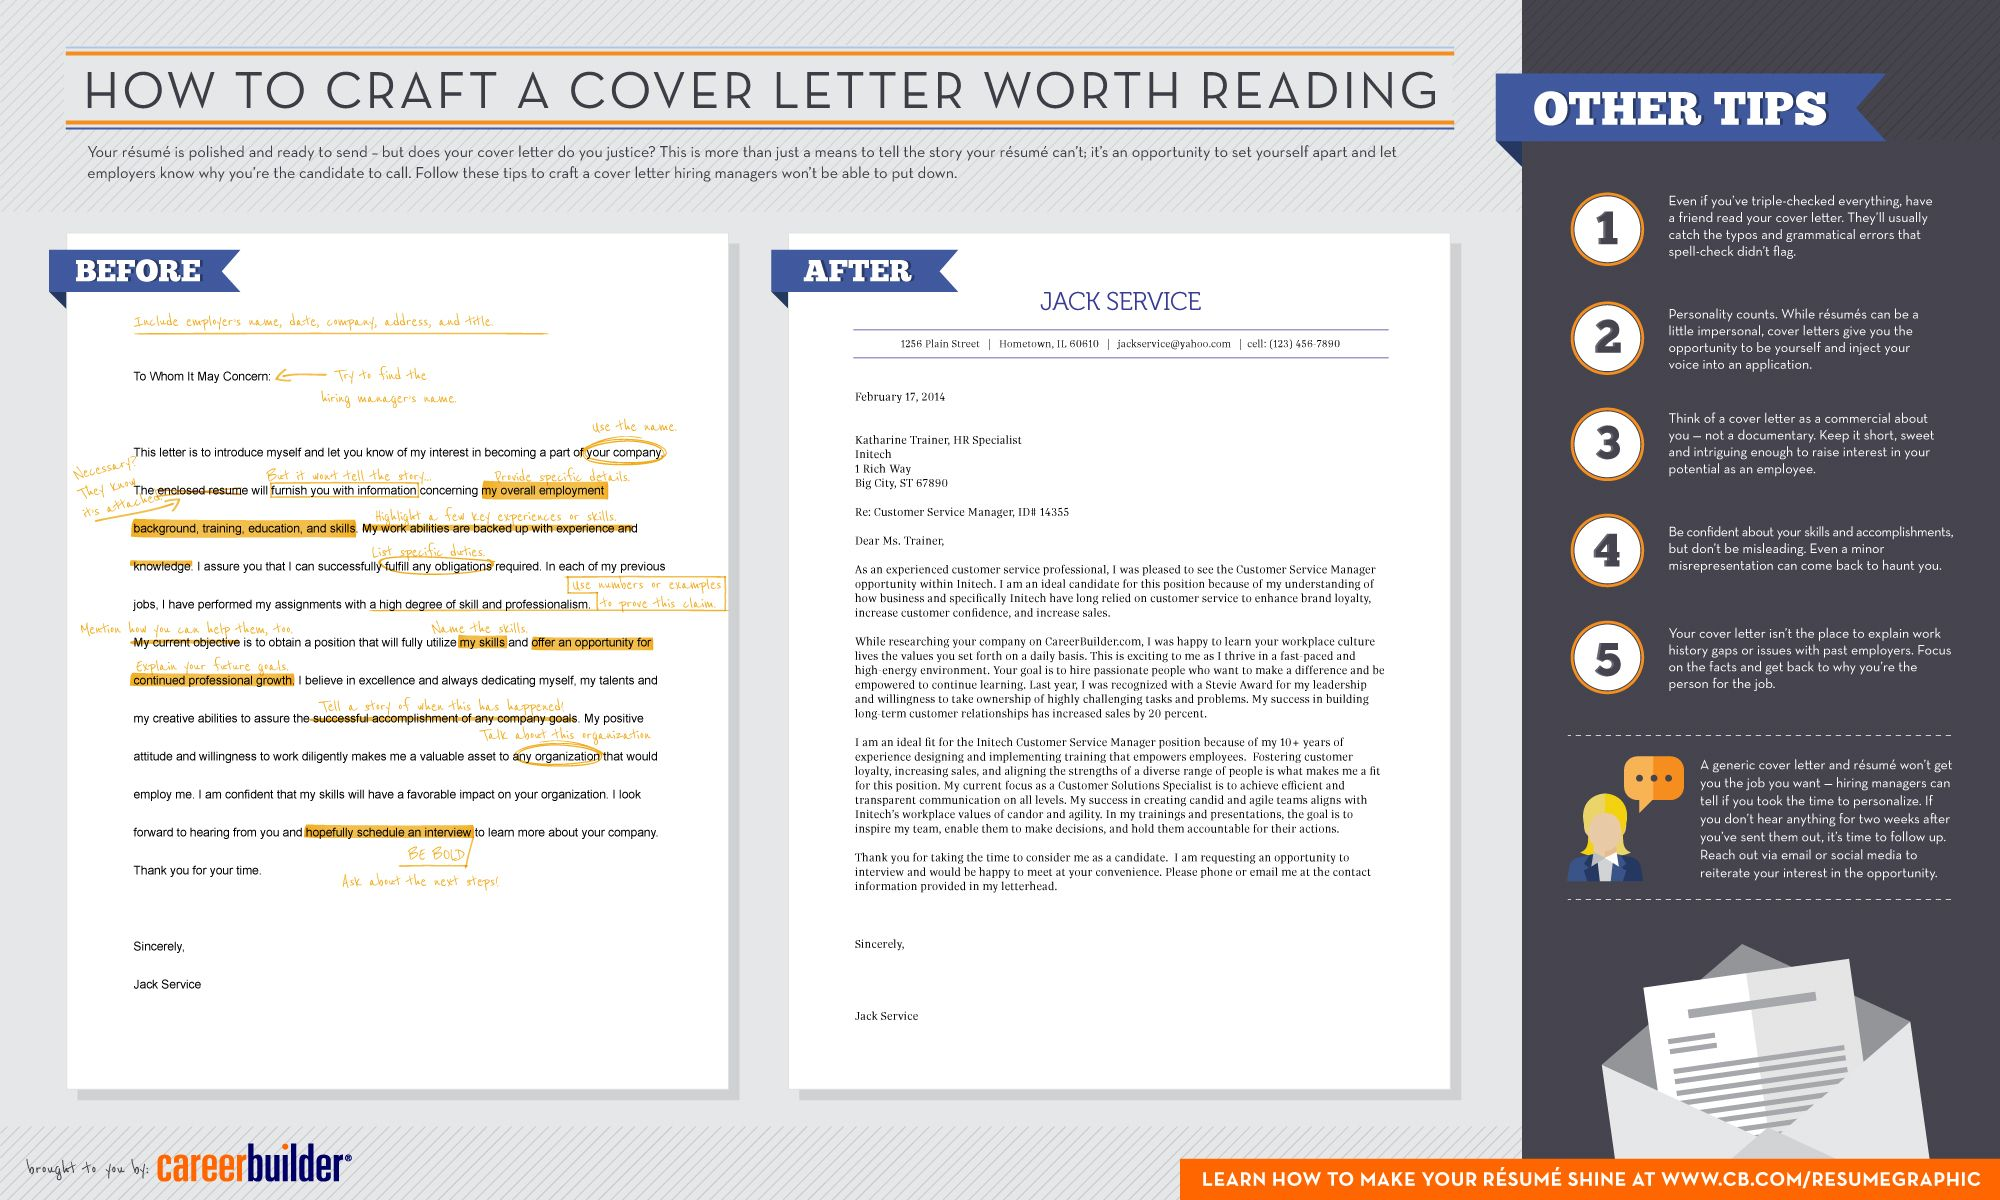 Cover Letter Advice Best Cb's Newest Infographic How To Craft A Cover Letter Worth Reading Design Ideas